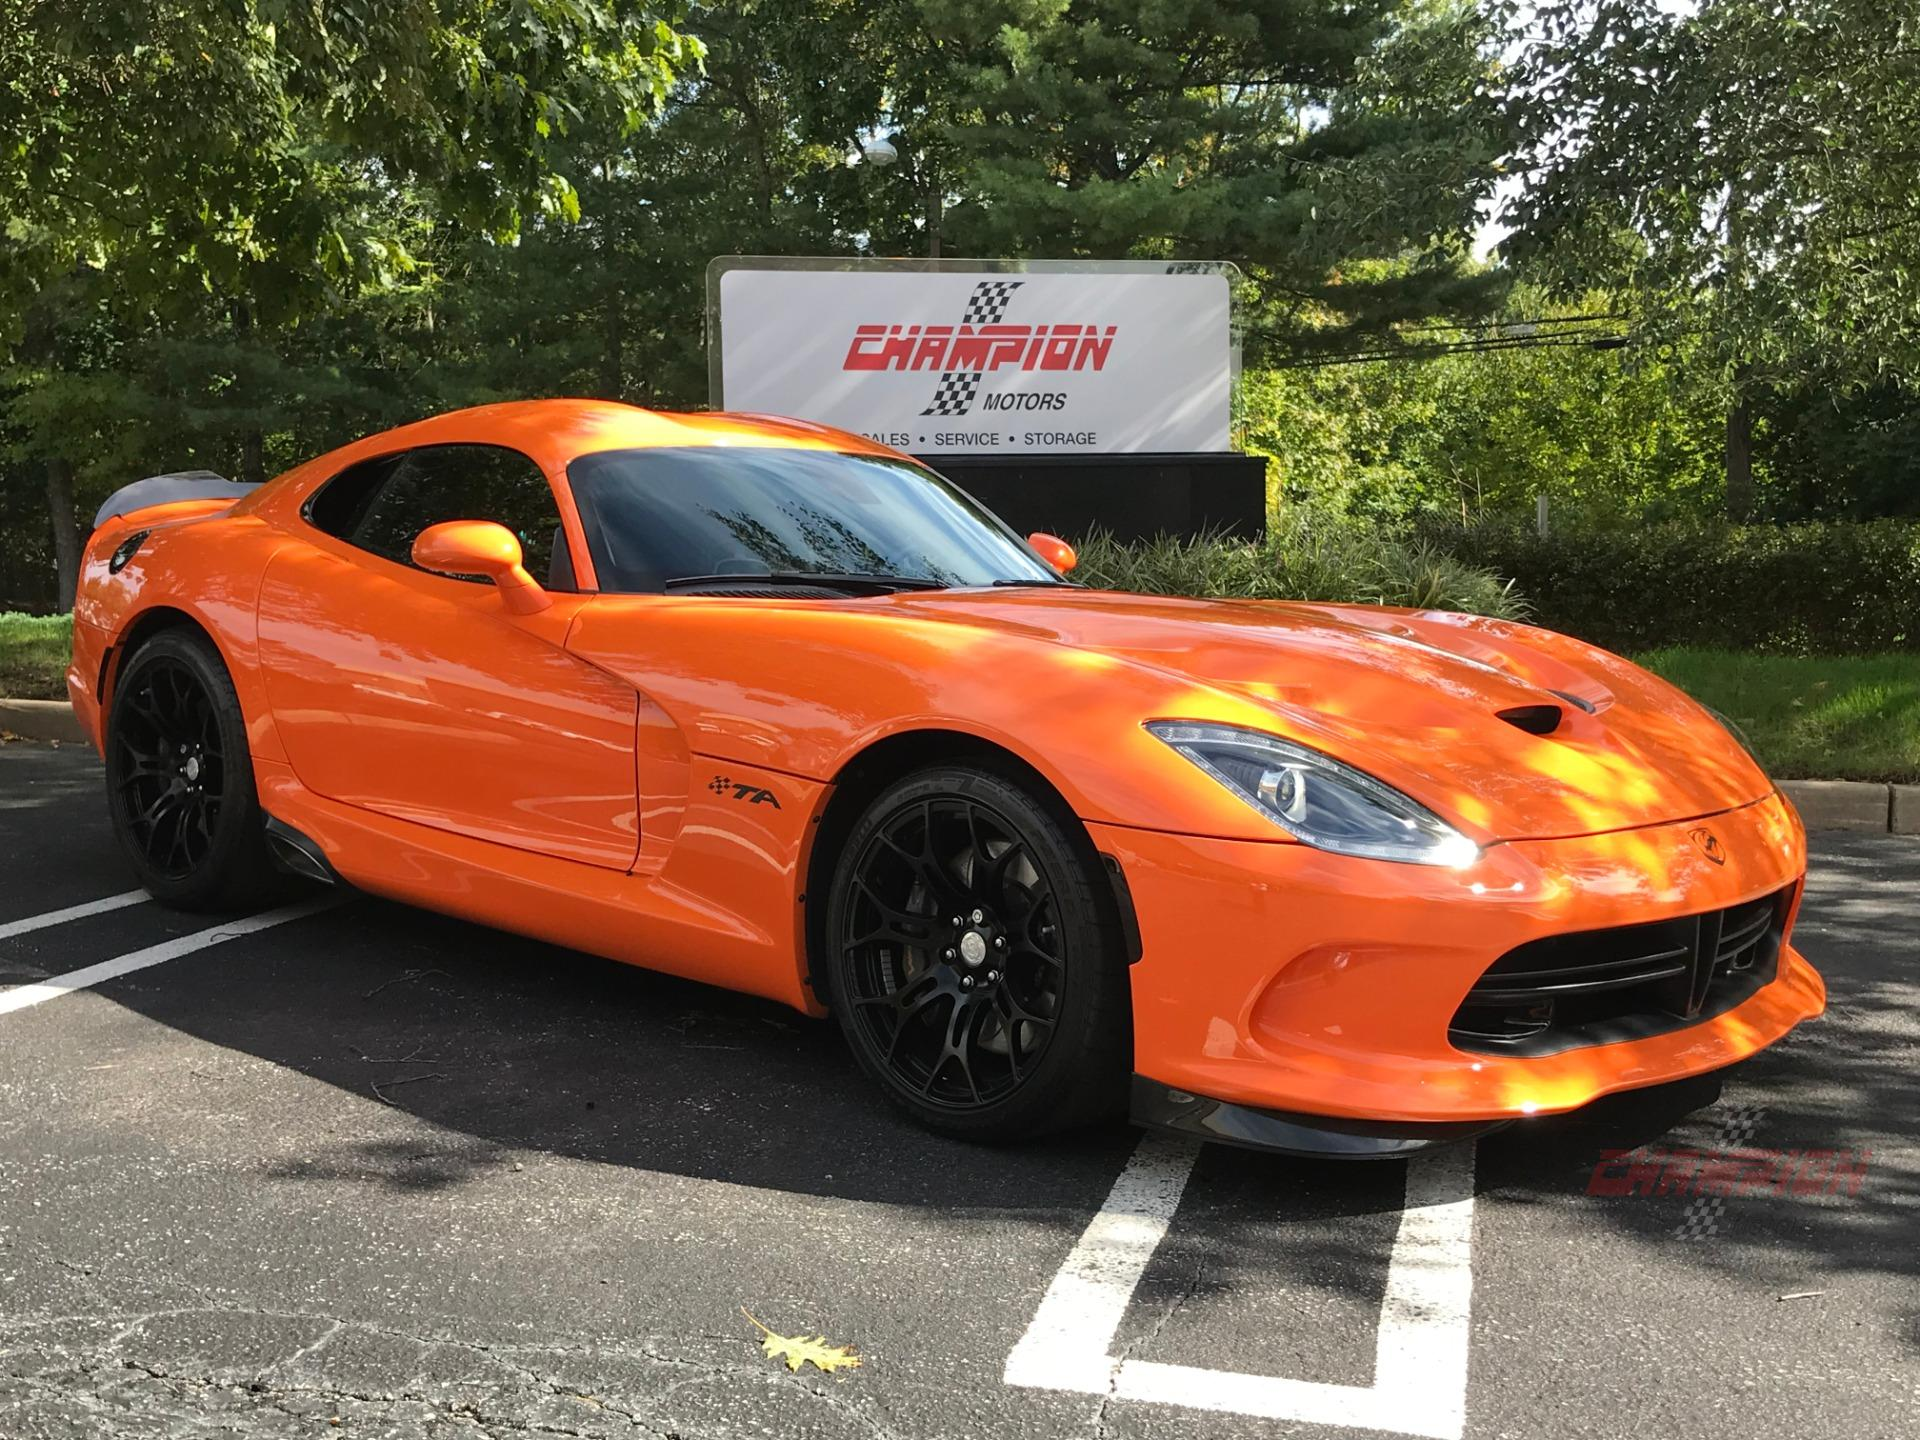 2014 Dodge Srt Viper Ta Package Champion Motors International L